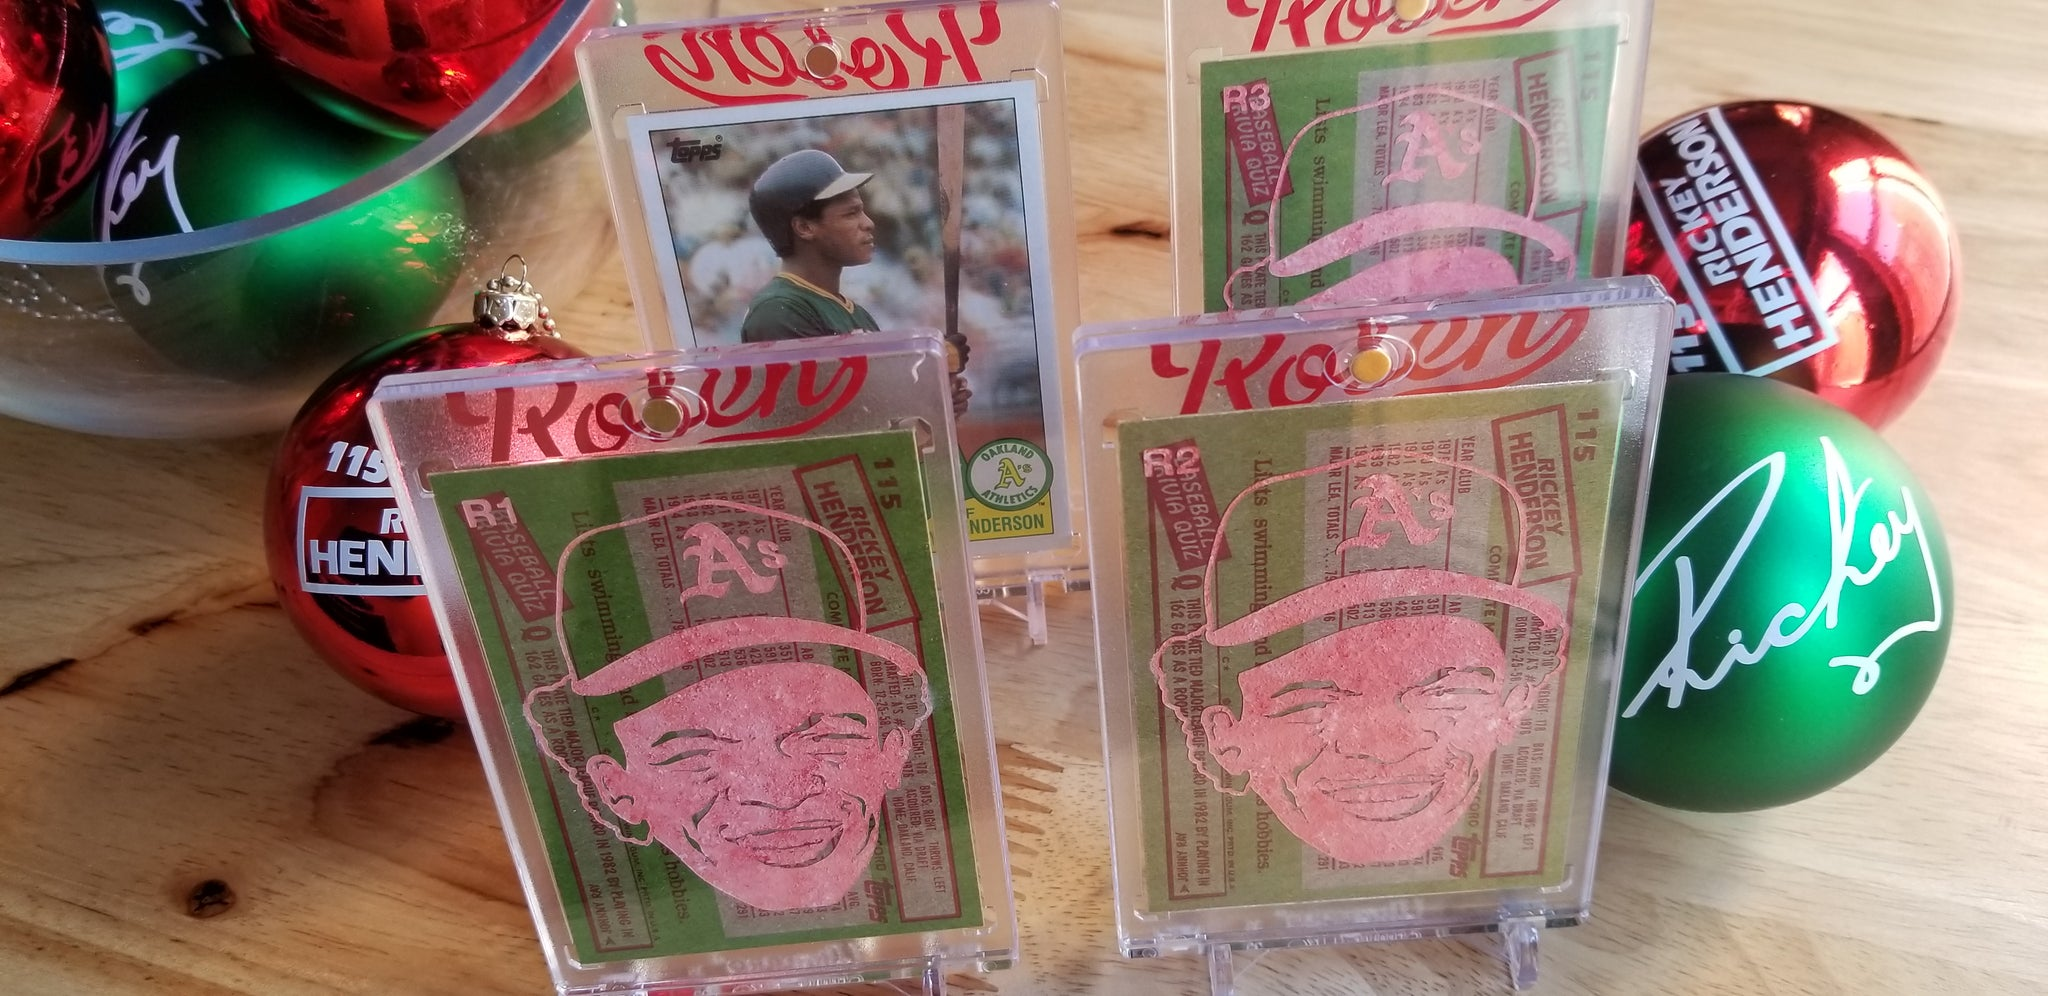 Baseball card art by Matt Rosen - Rickey Henderson Christmas Ornaments